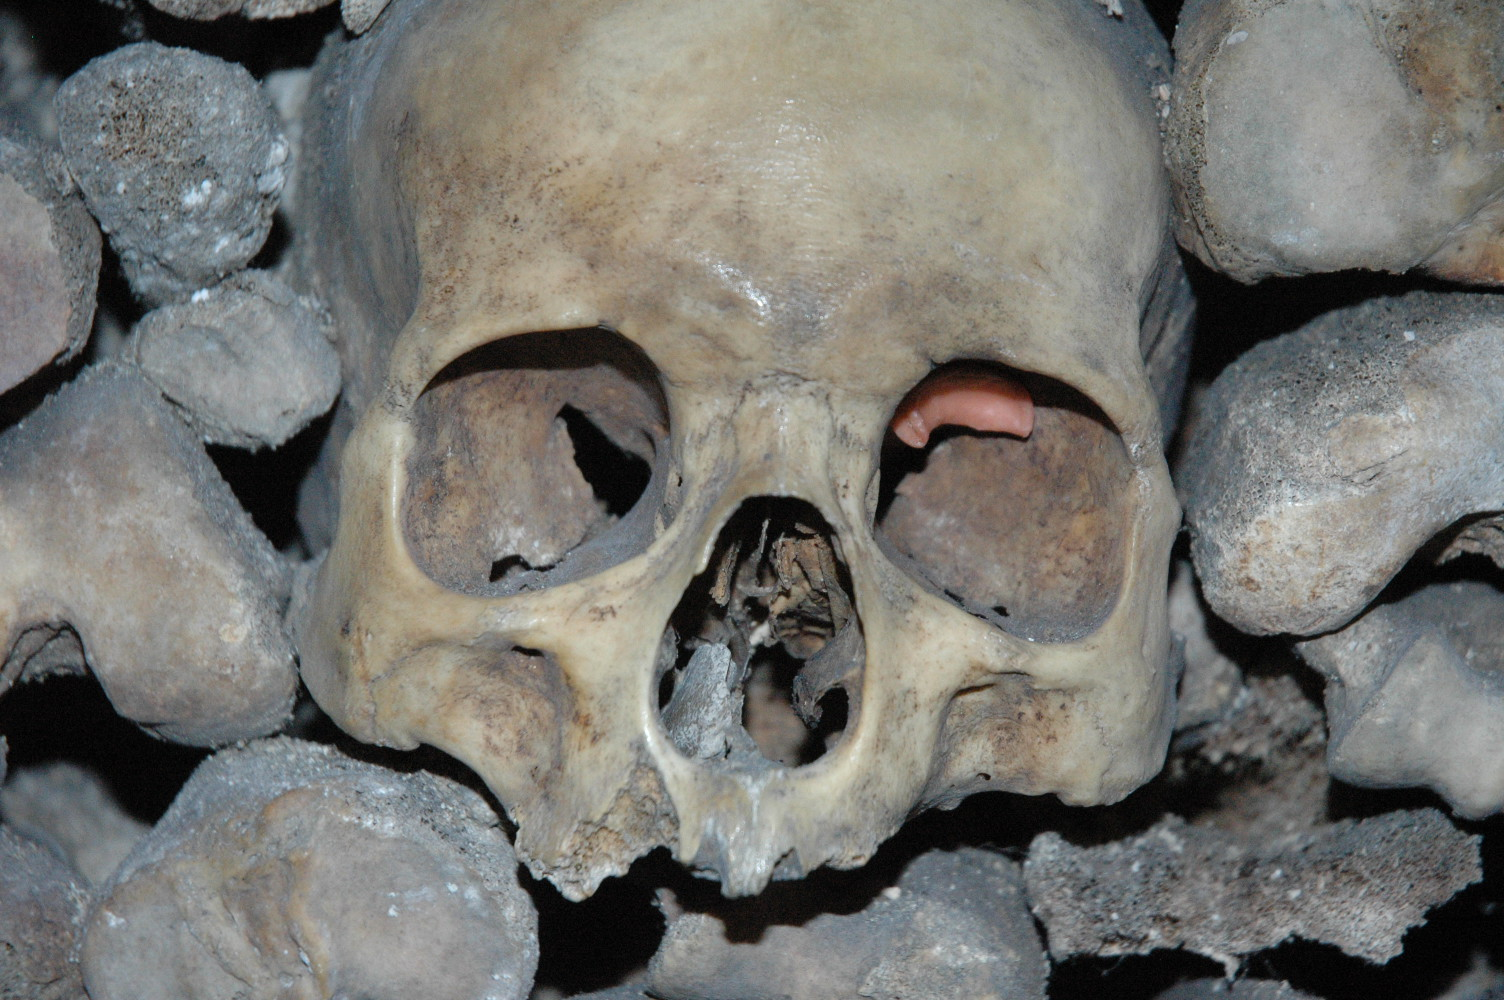 This is the skull that is about to be referenced below.